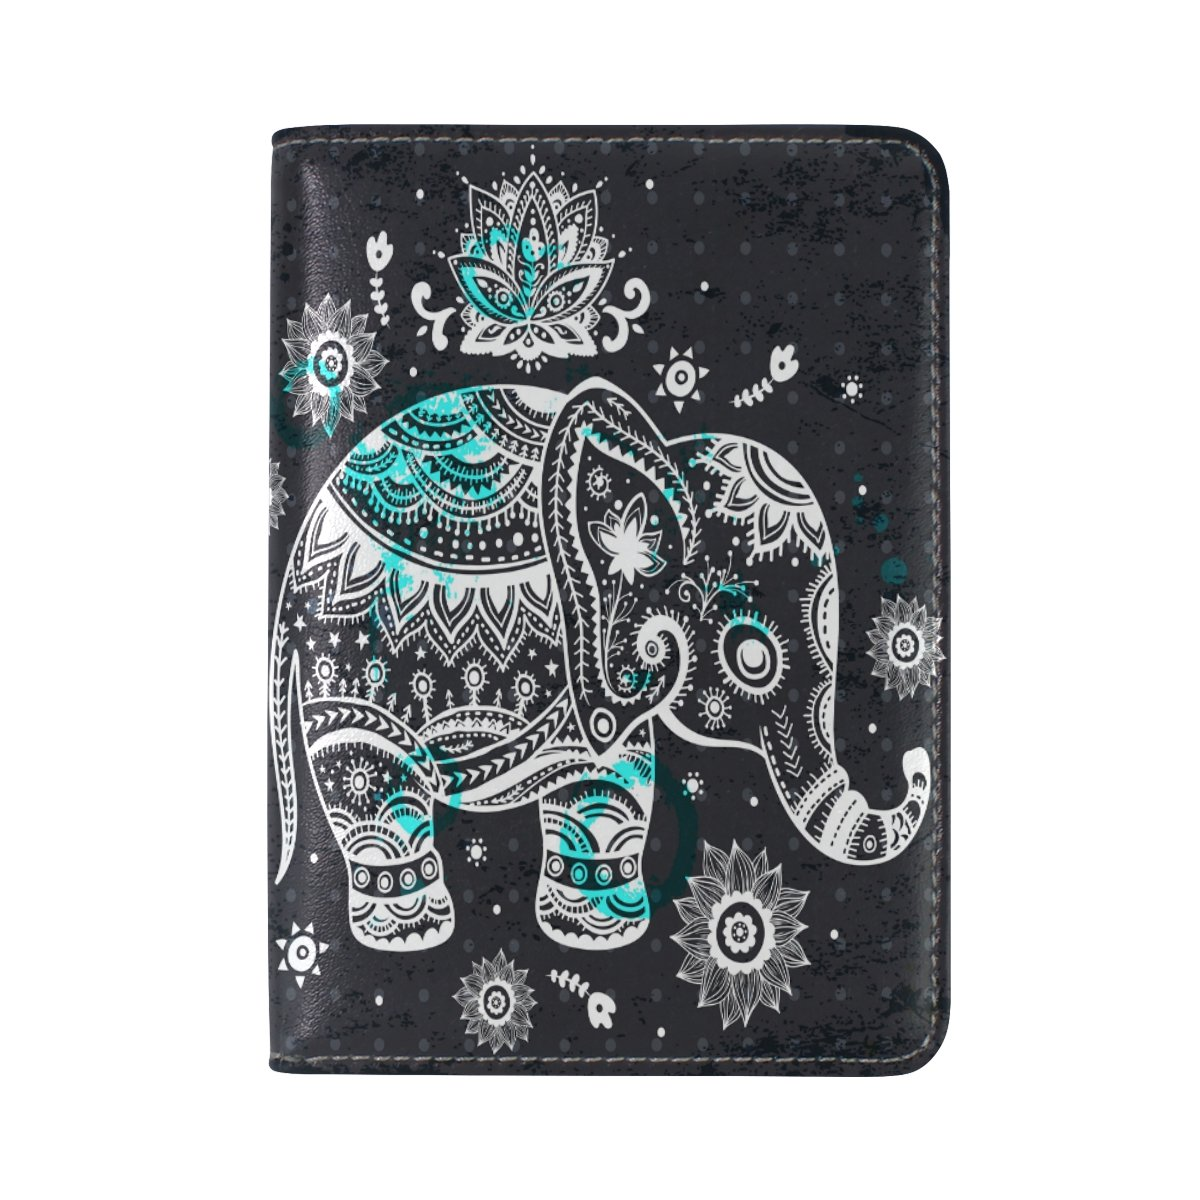 Elephant Genuine Leather Passport Case Holder Cover Protector for Travel